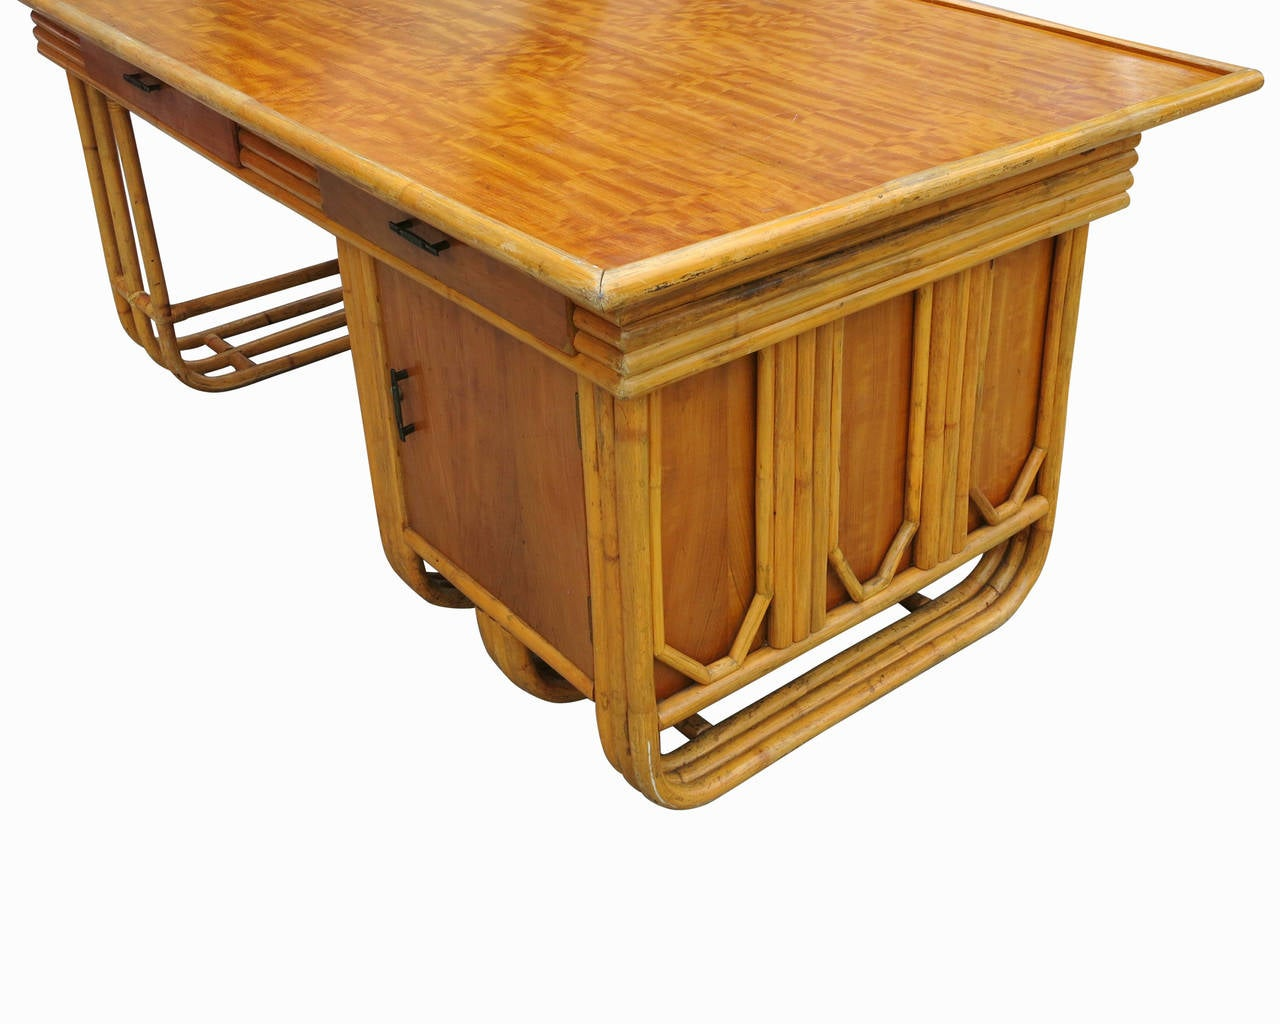 Restored Large Jean Royère Style Streamline Rattan Executive Desk In Excellent Condition For Sale In Van Nuys, CA